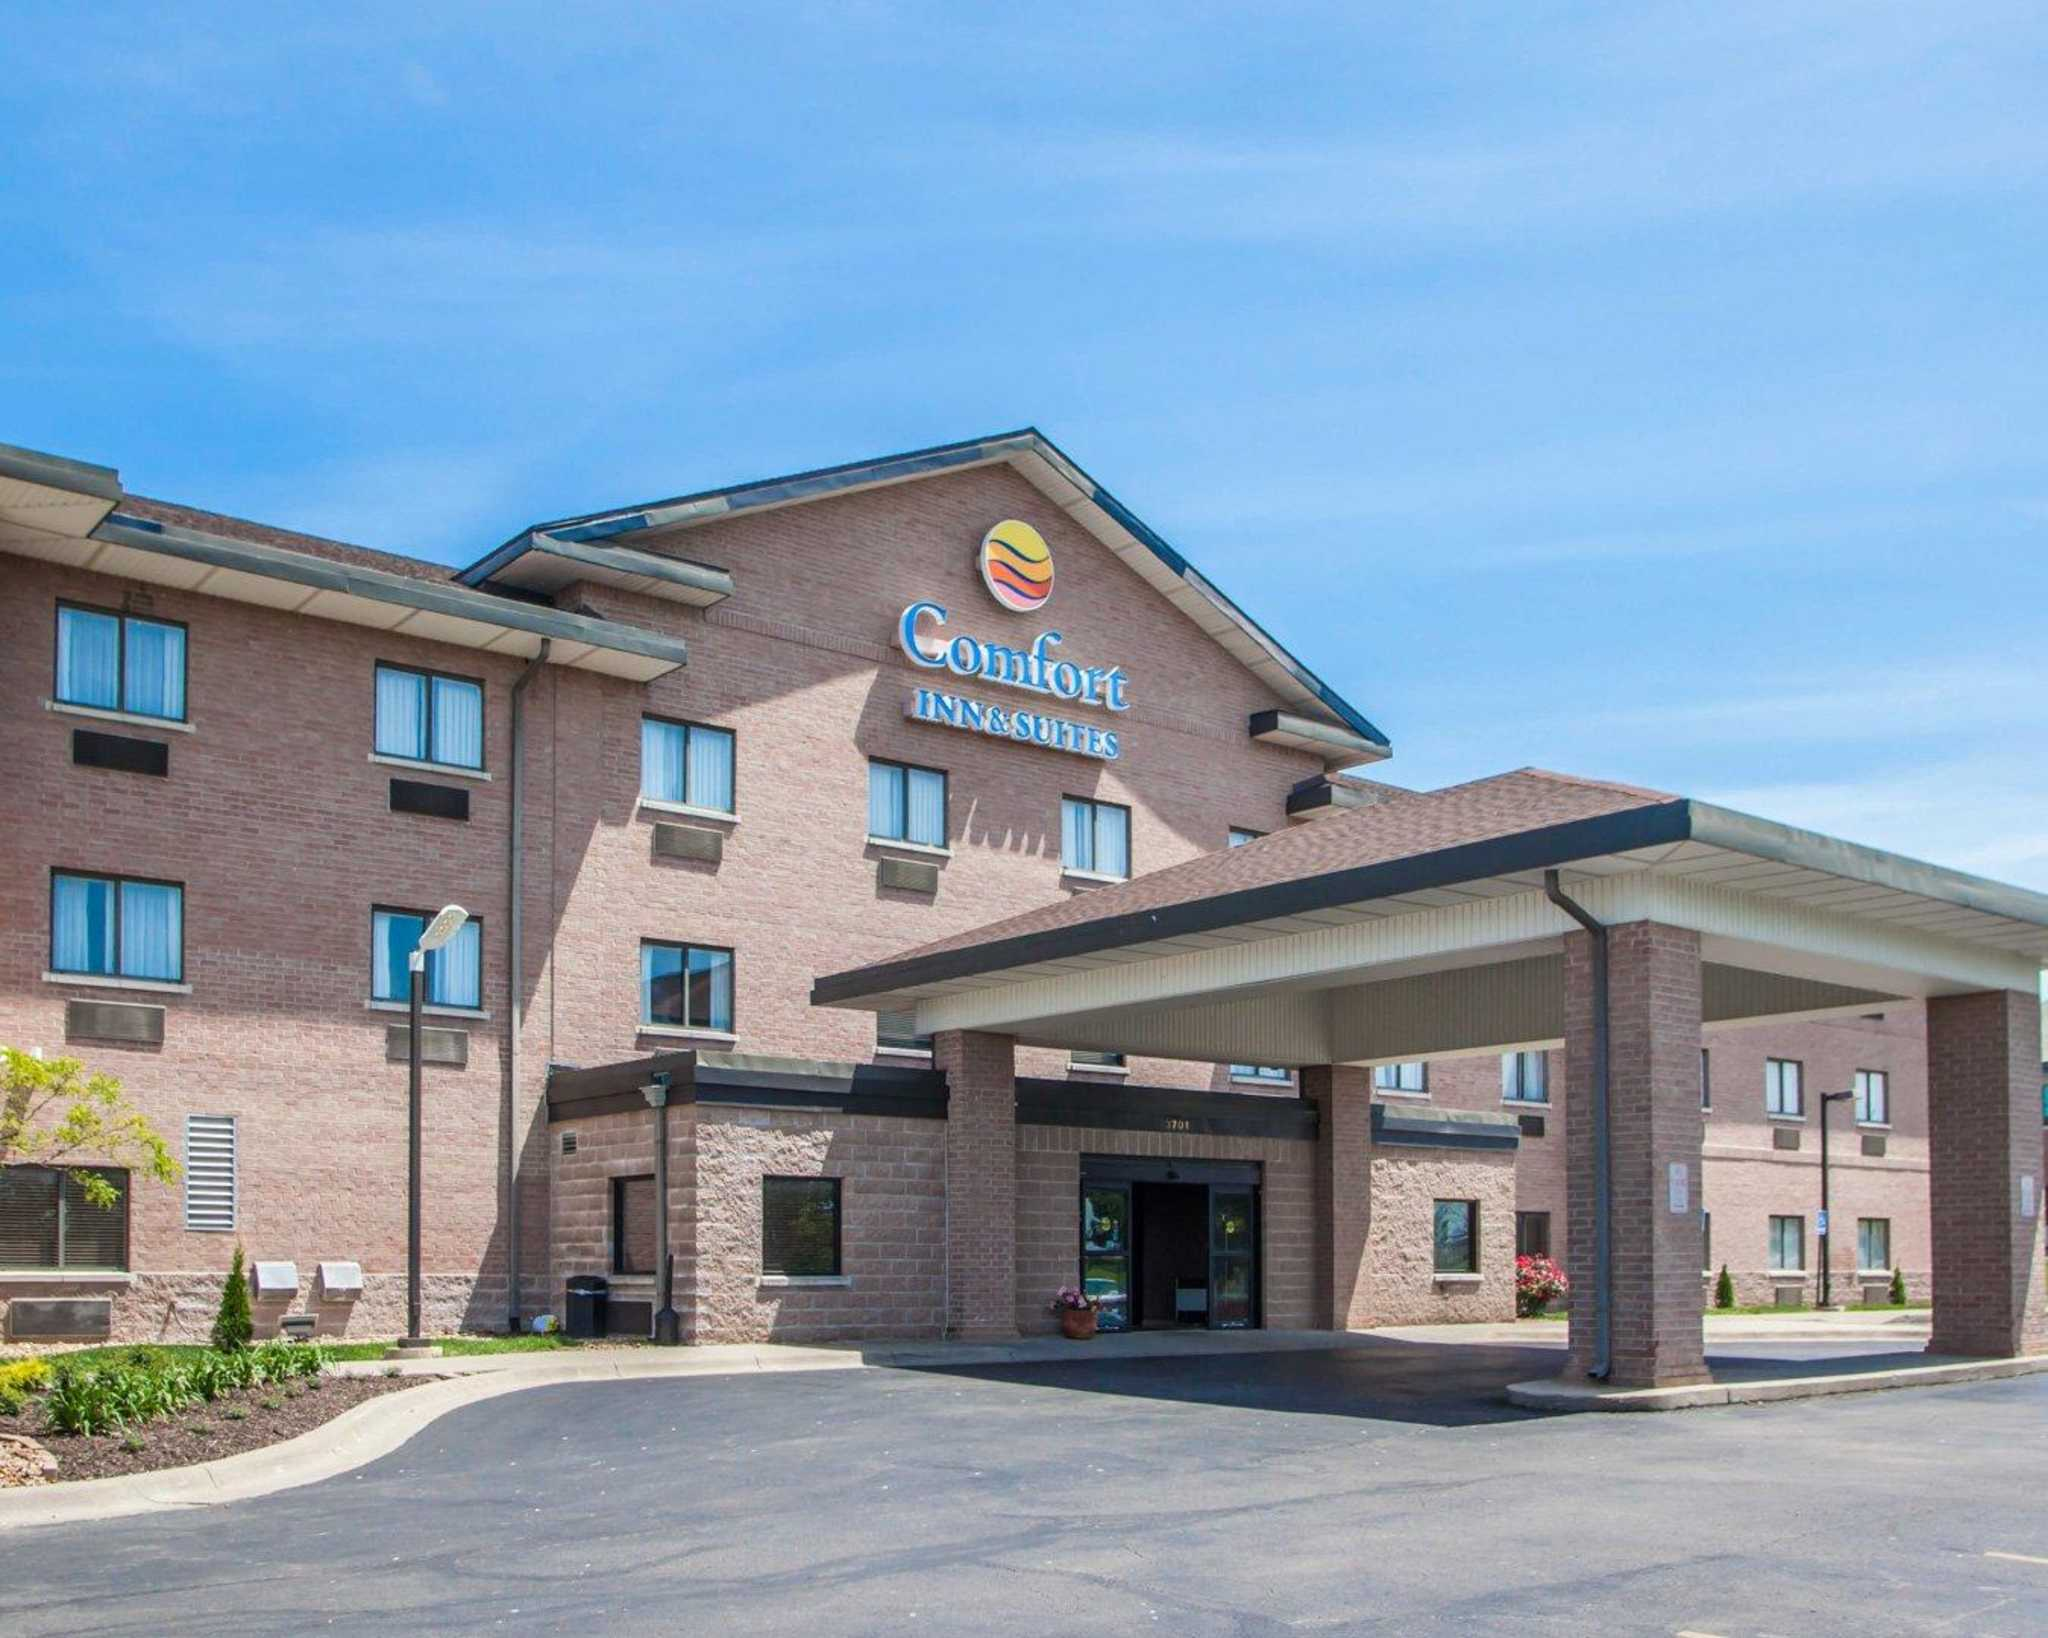 Comfort Inn & Suites Lees Summit -Kansas City image 1